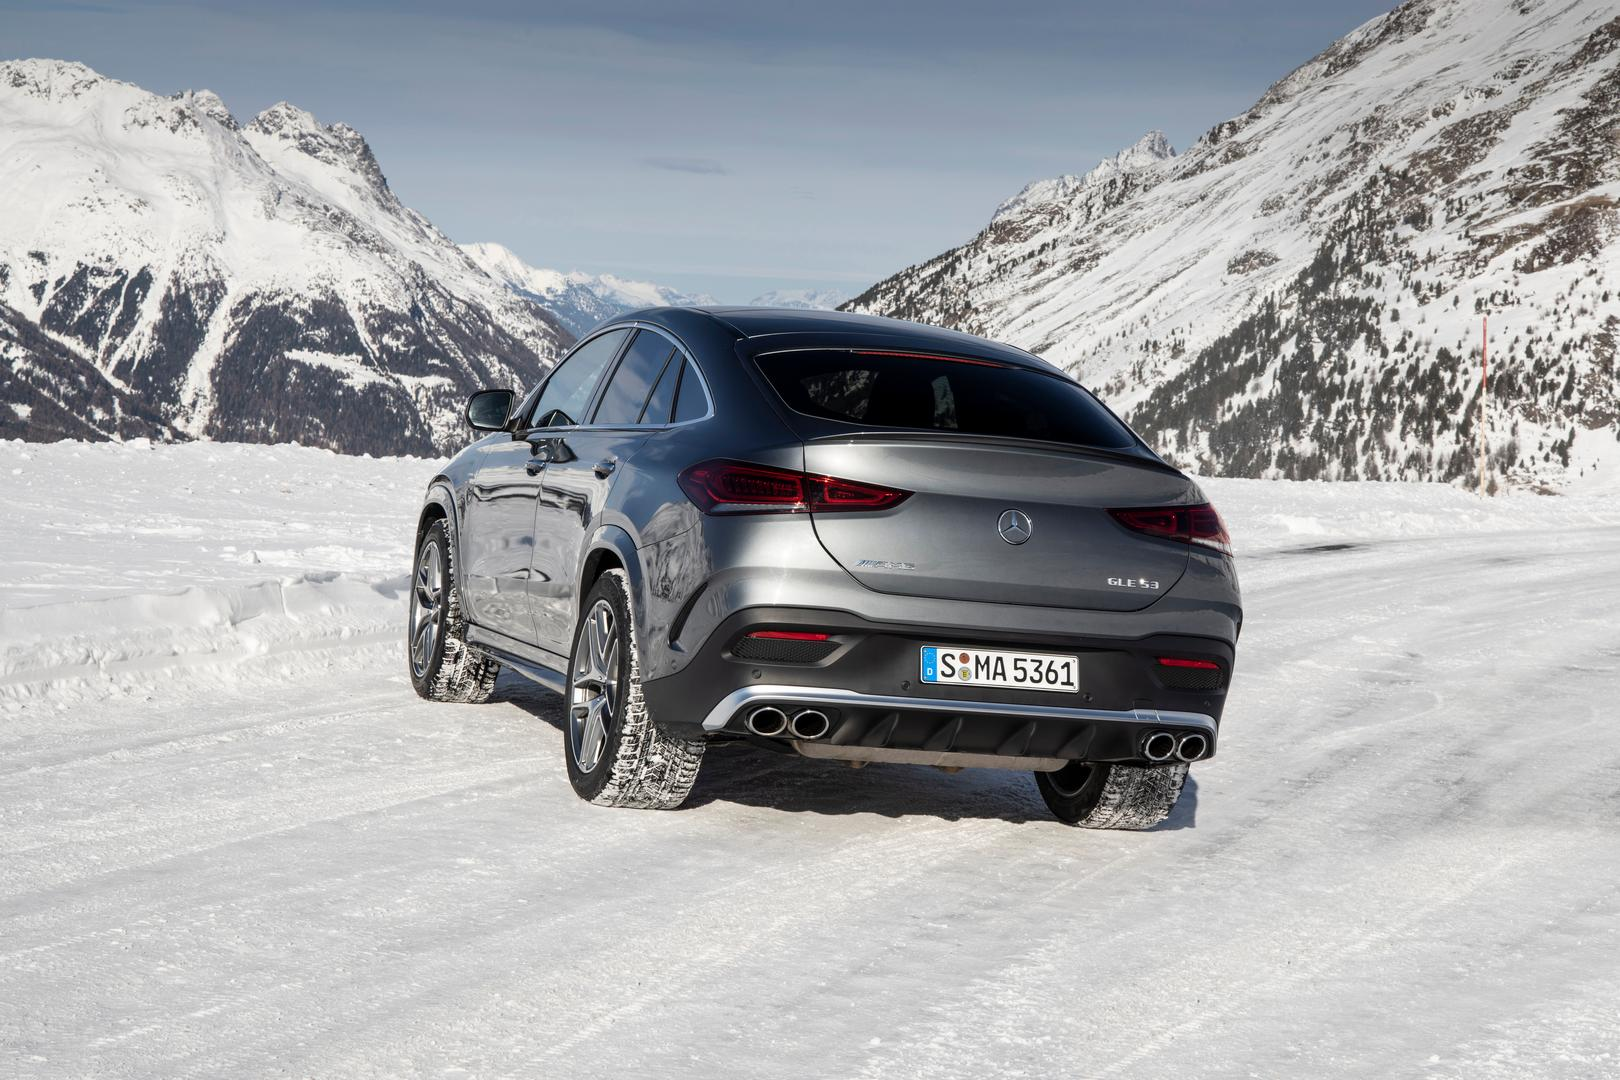 Mercedes-AMG GLE 53 Coupe Specs